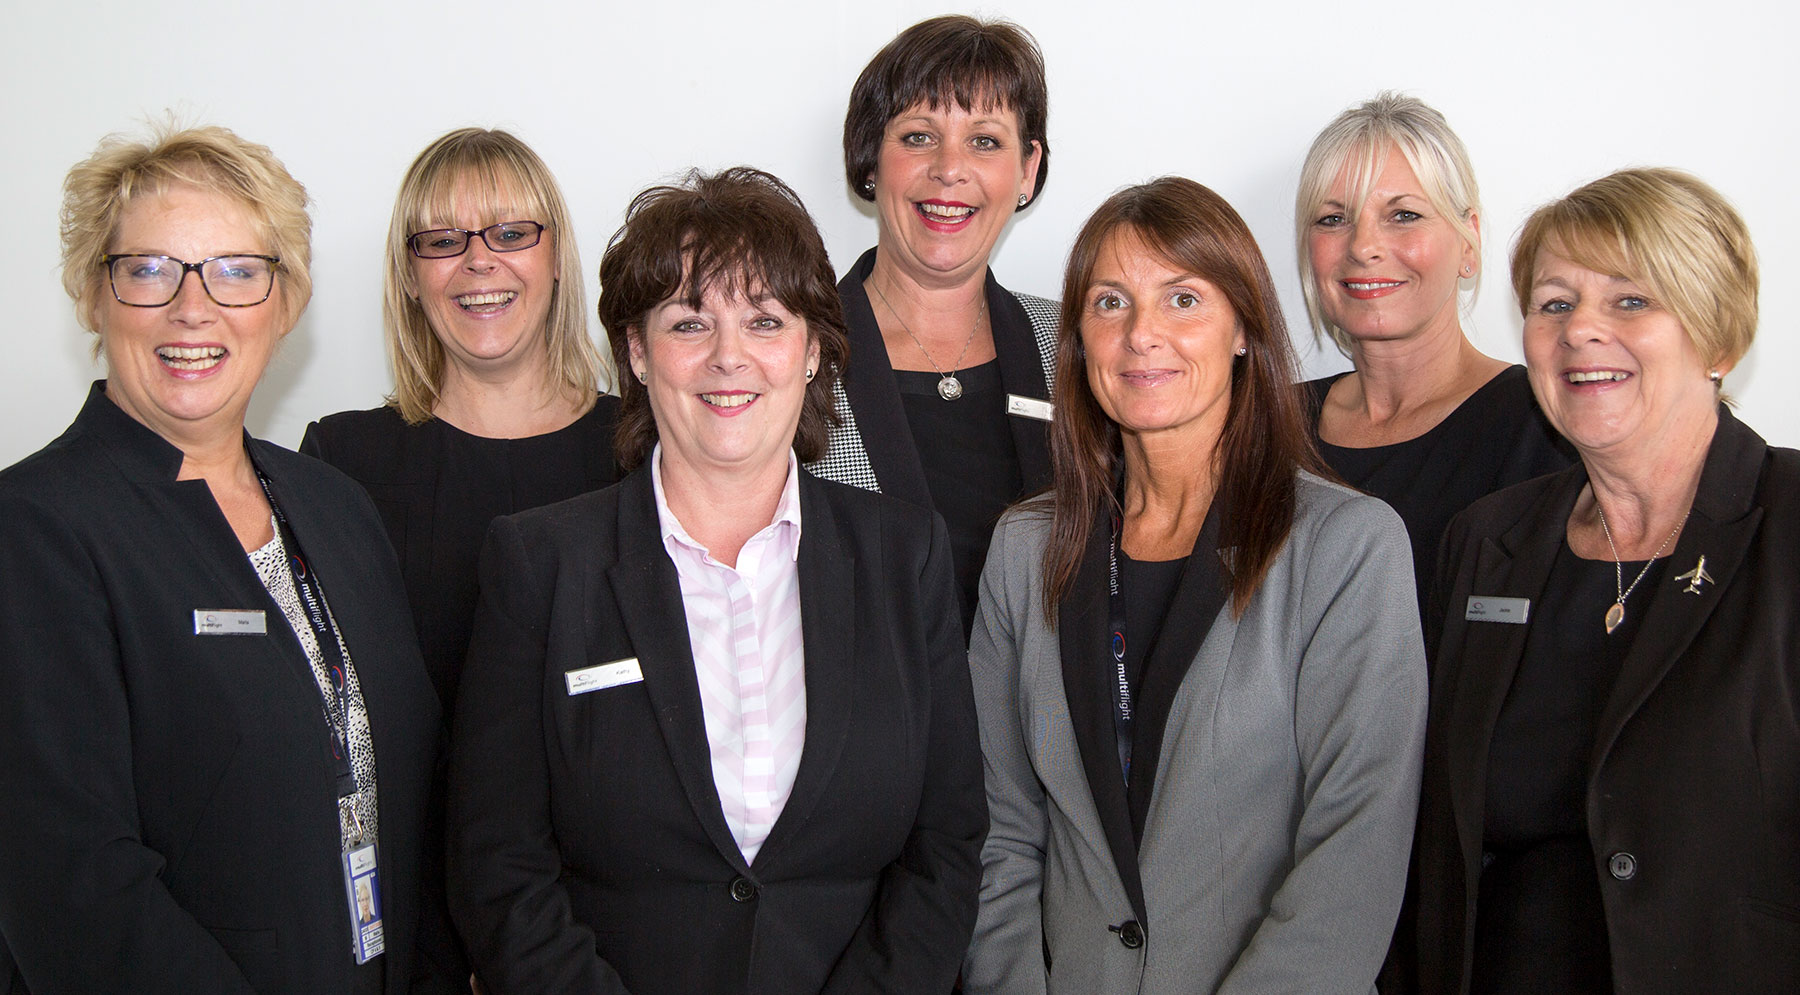 meet the executive handling team multiflight